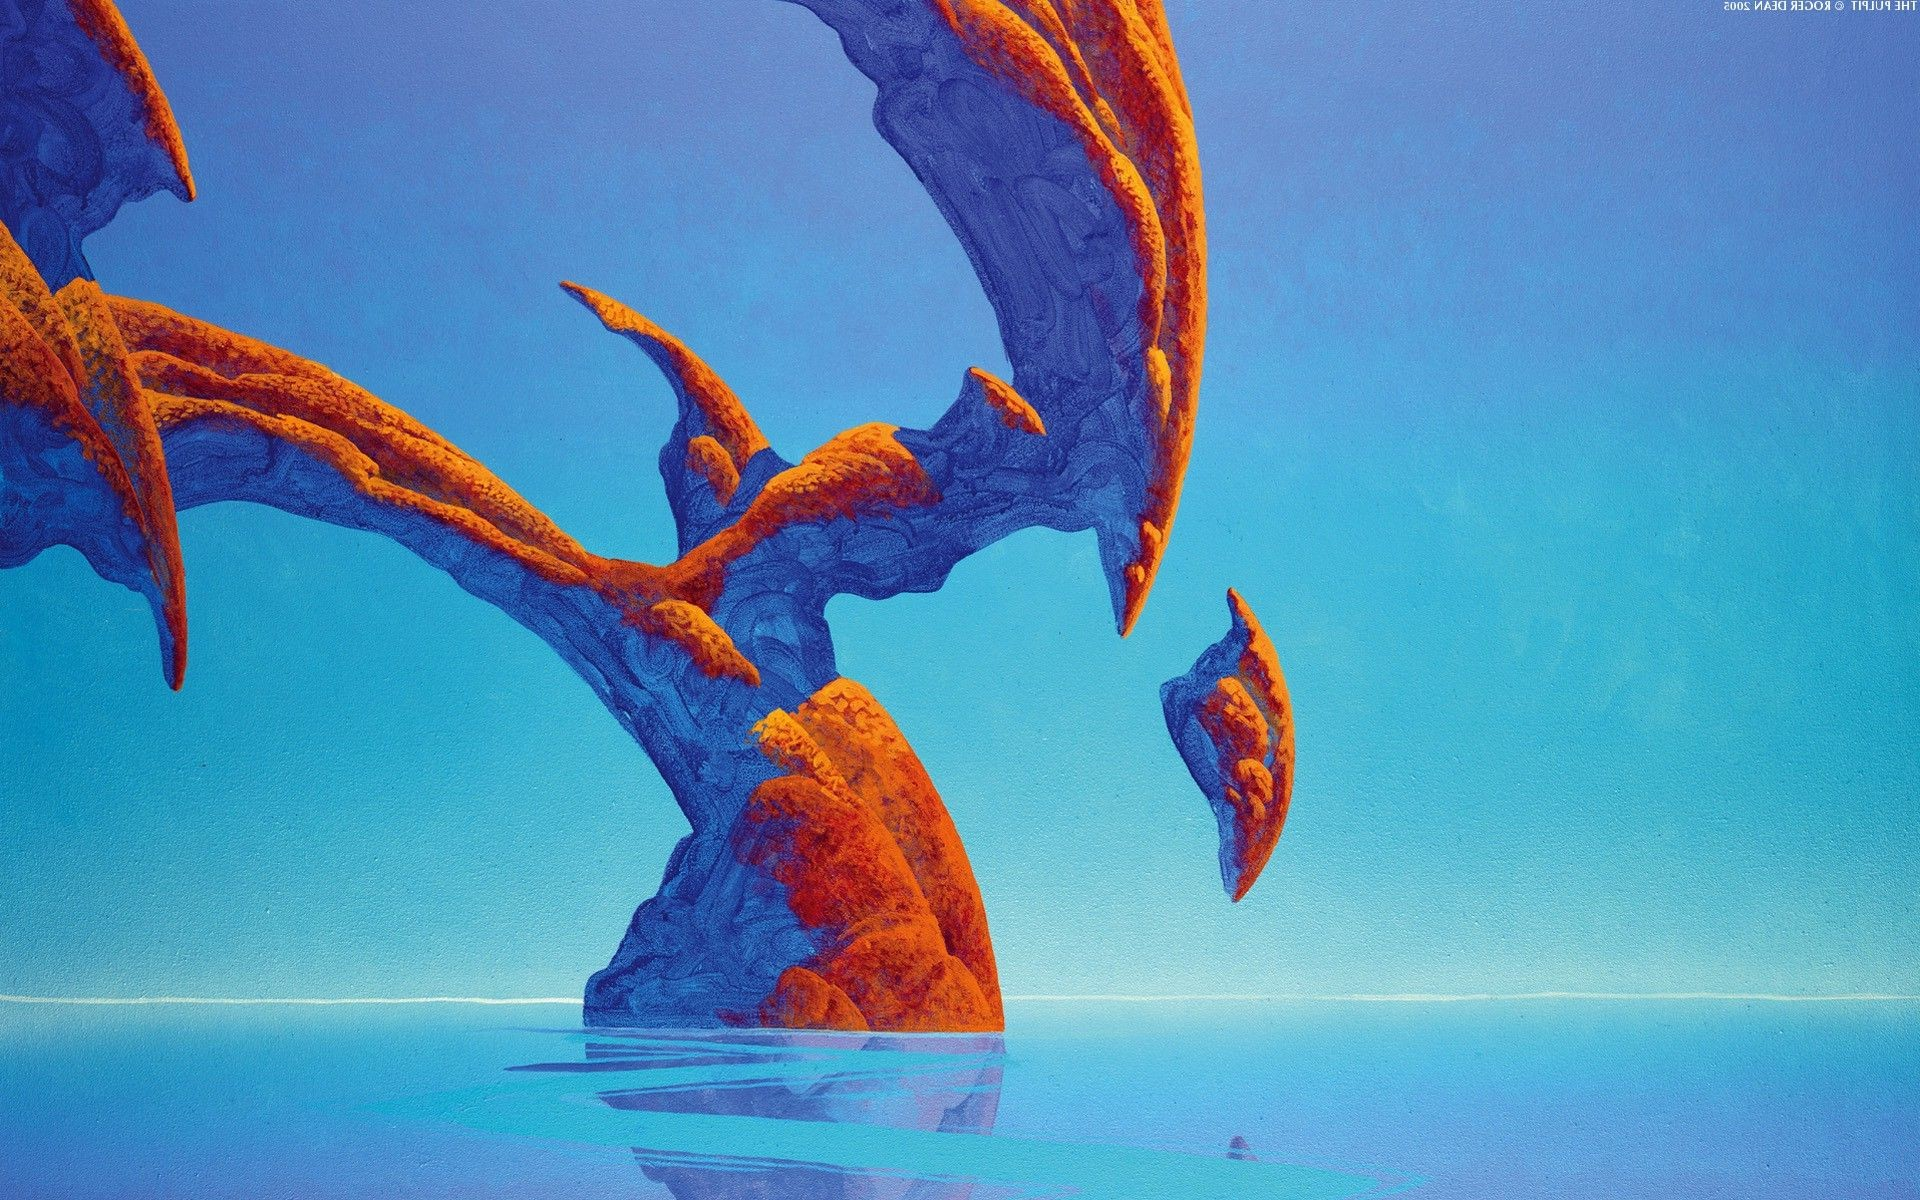 1920x1200 Roger Dean, Rock Formation, Fantasy Art Wallpaper | Roger .